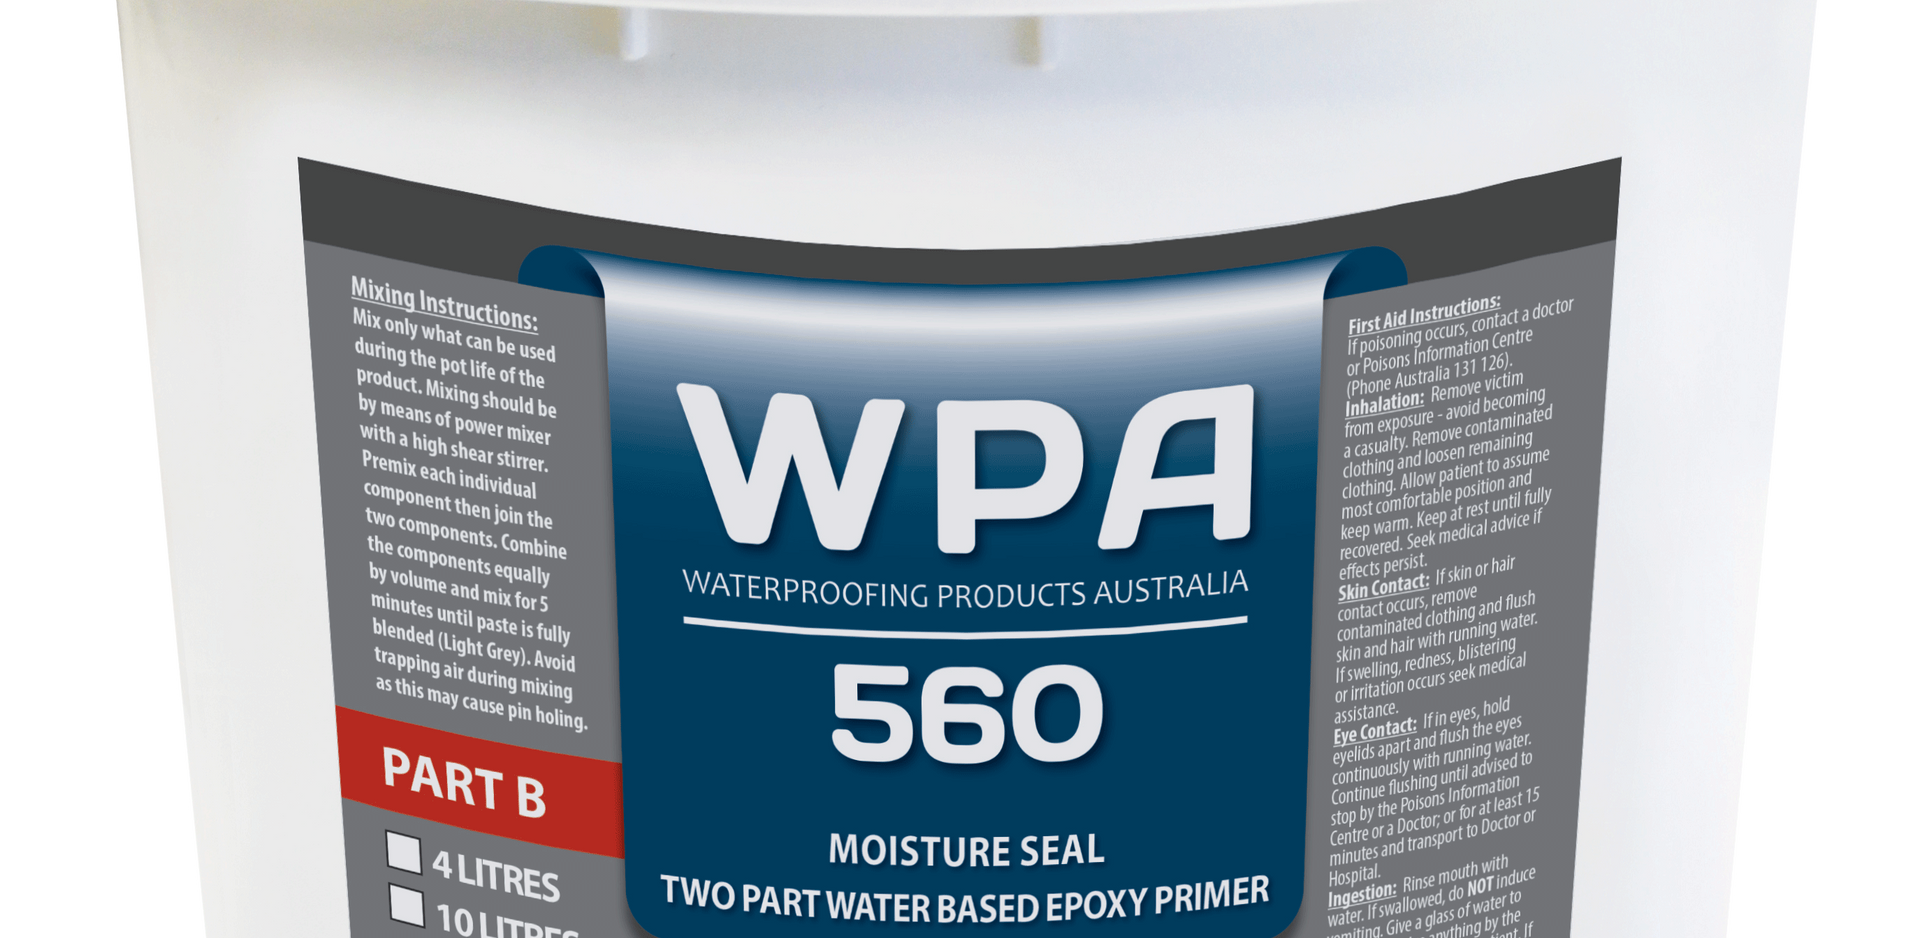 WPA-560-Two-Part-Water-Based-Epoxy-Primer-PartB.png